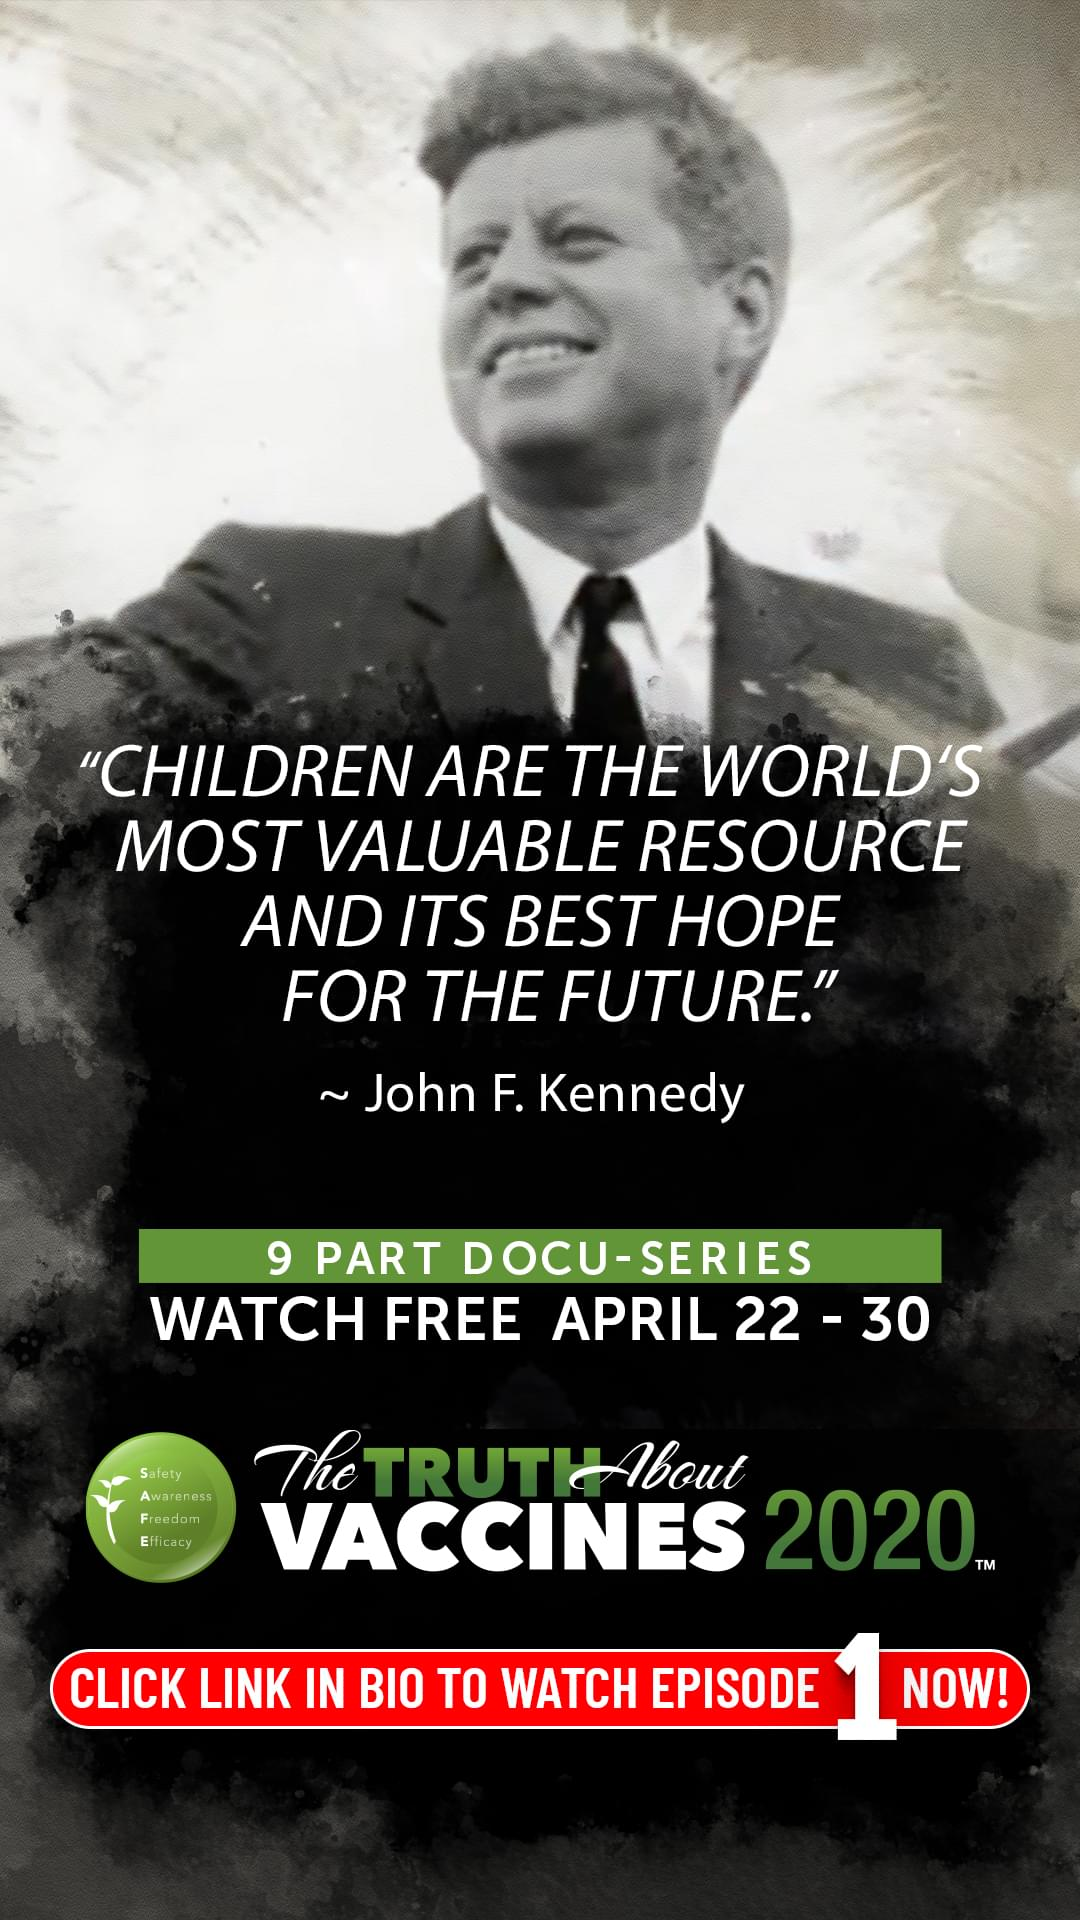 TTAV-ep01-Video_Quotes-John_F_Kennedy-IG-1080X1920-min